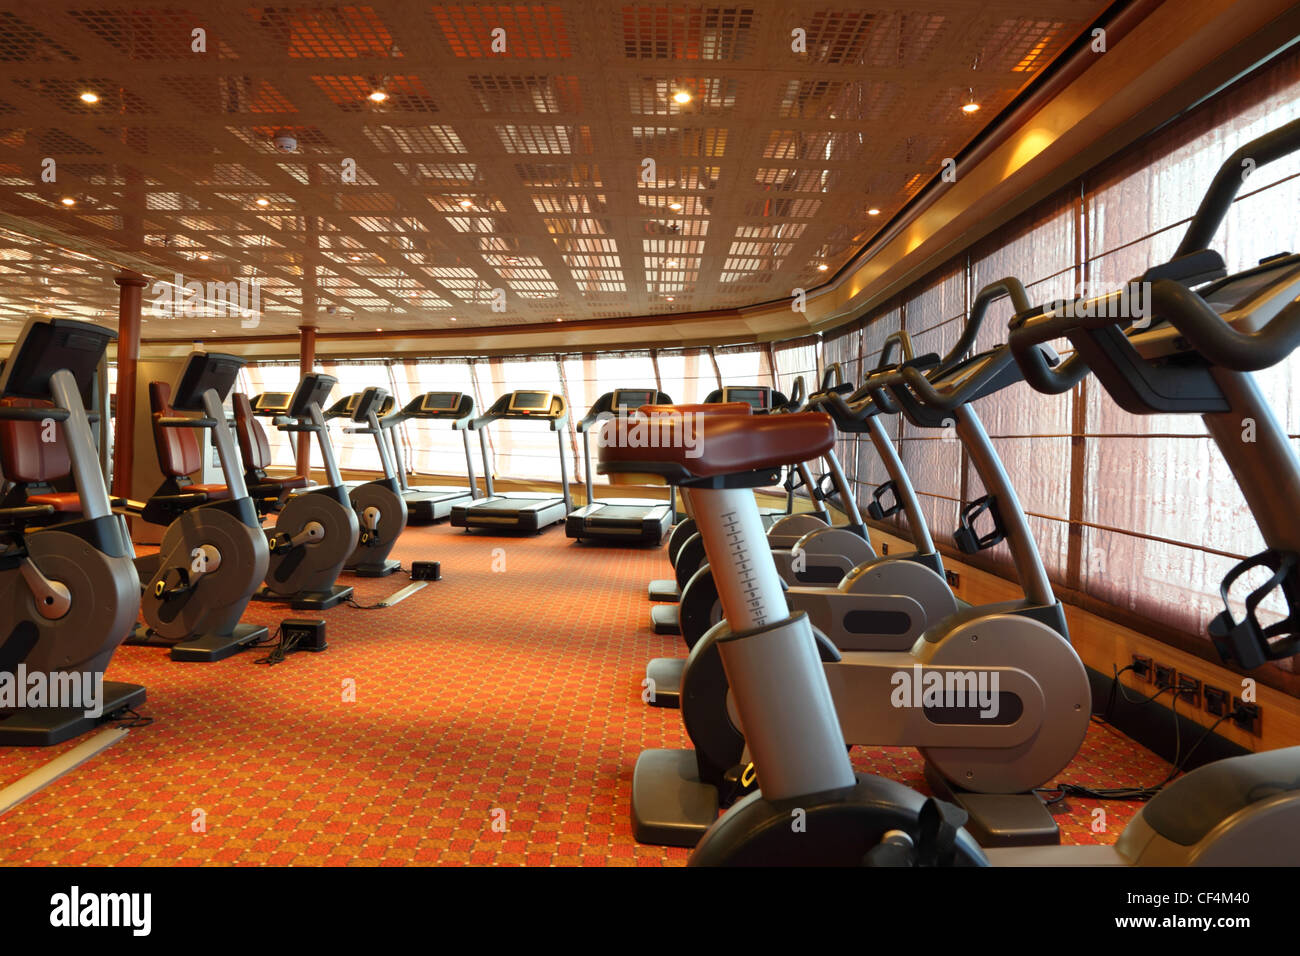 large gym hall with treadmills and exercise bicycle in cruise ship - Stock Image